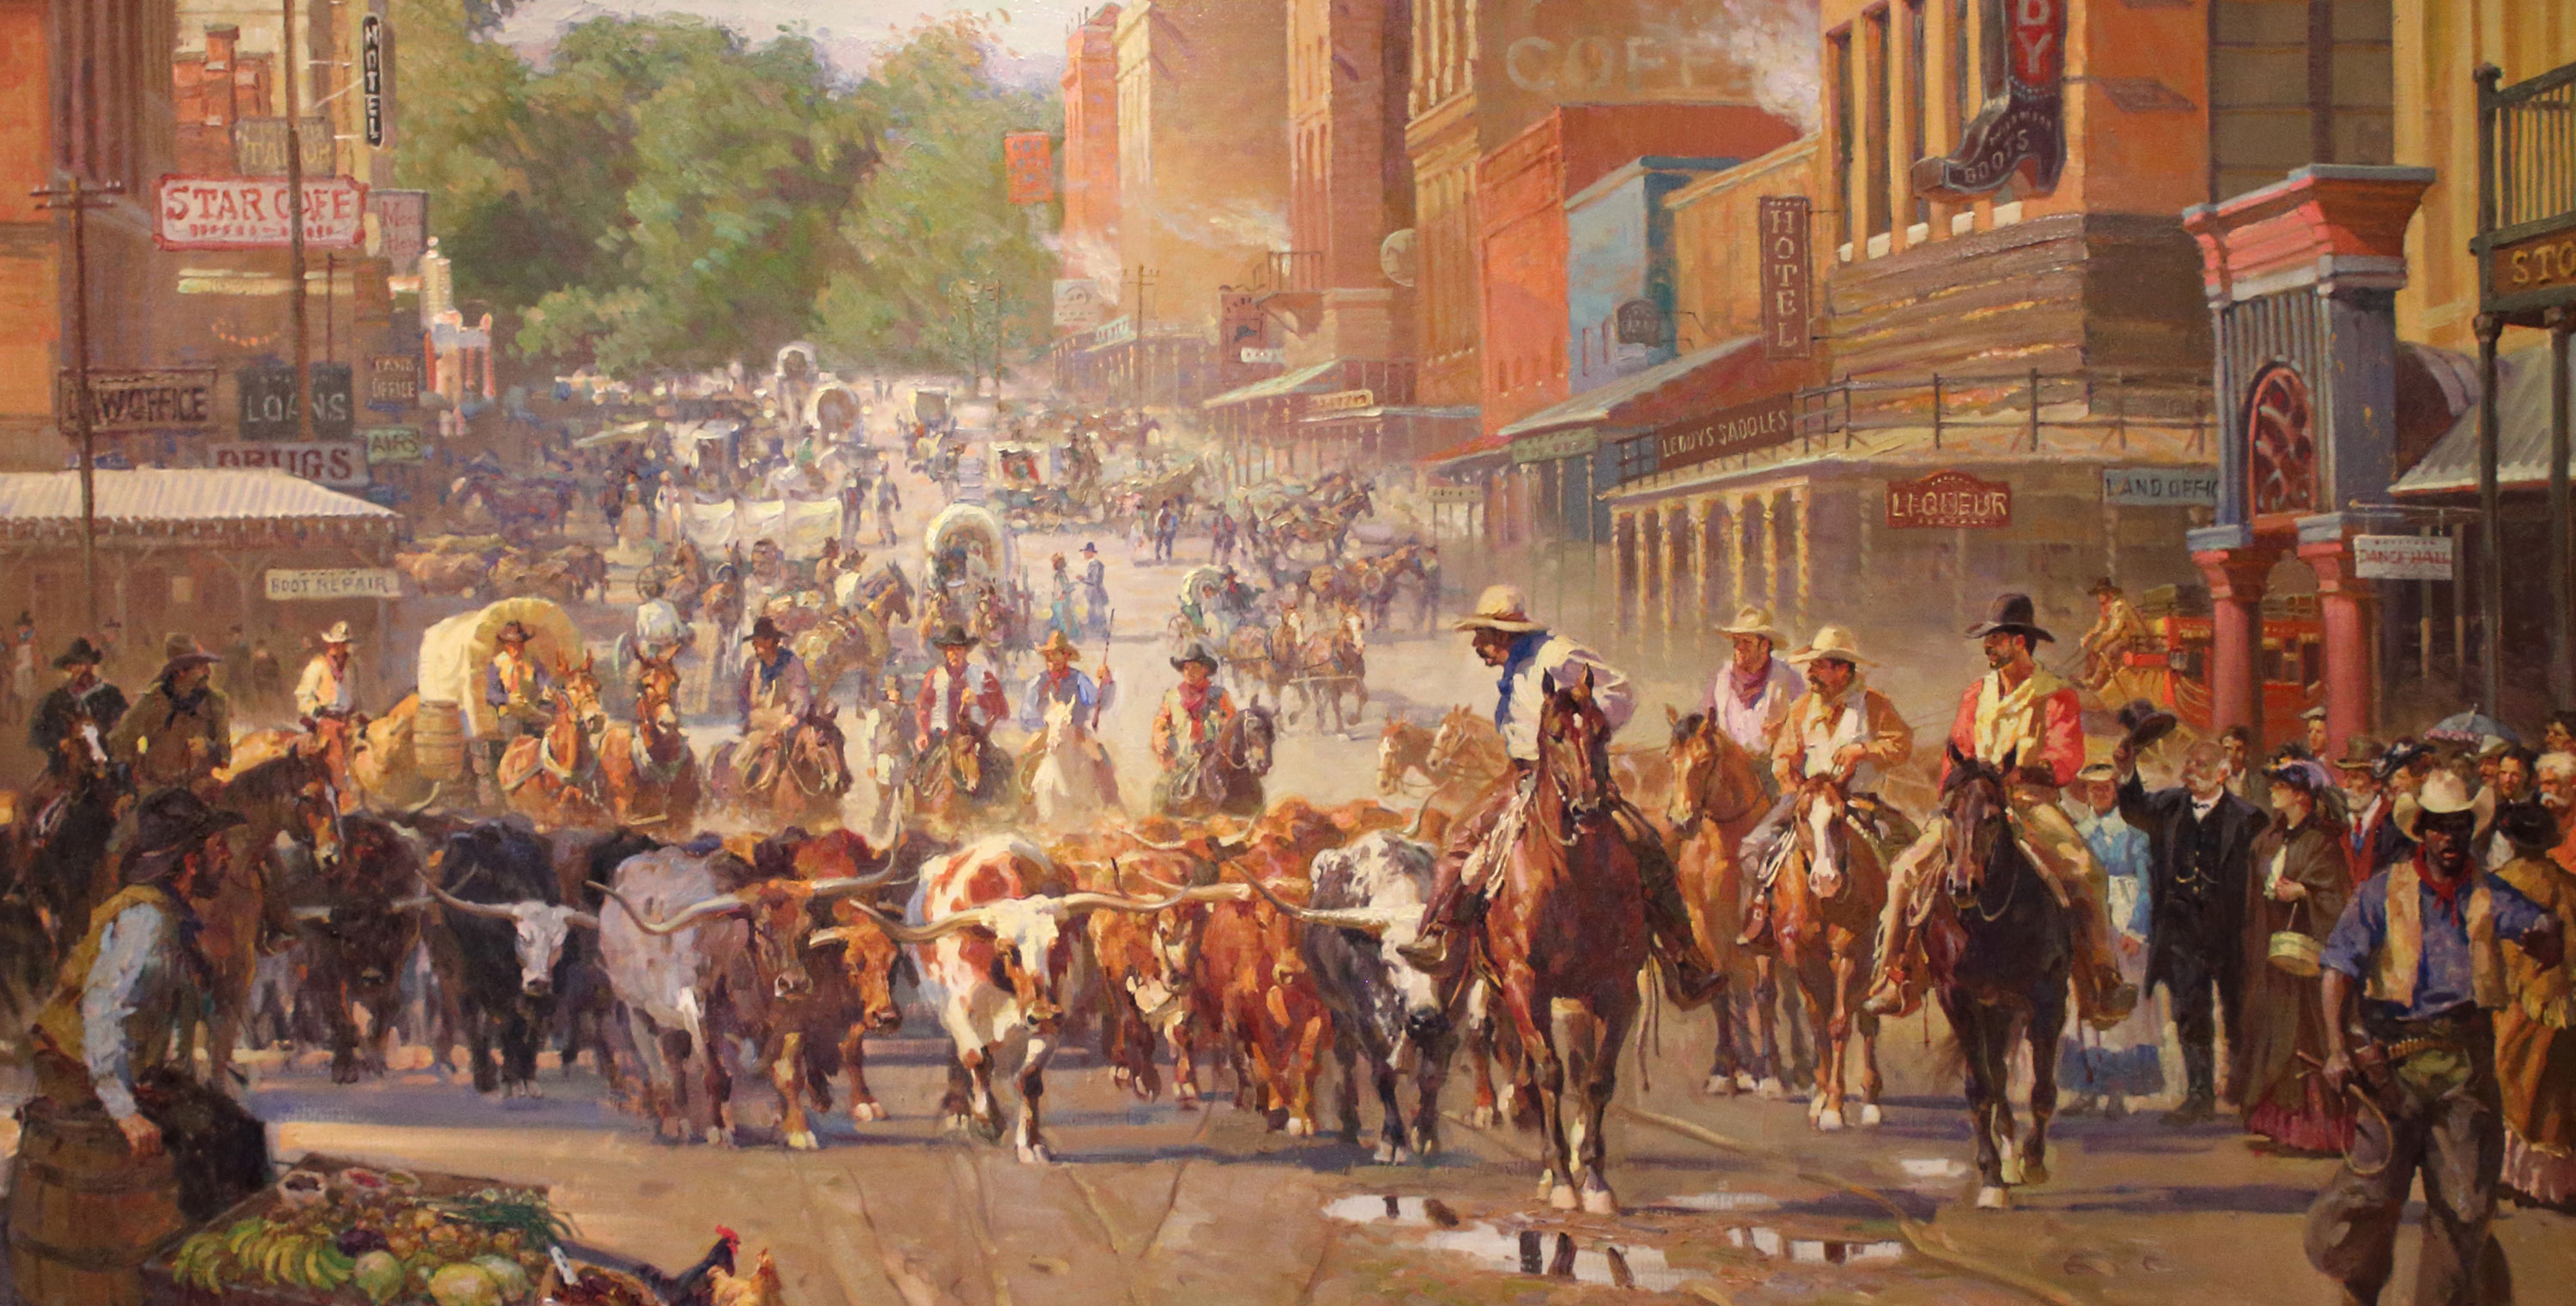 Arriving Fort Worth painting by Xiang Zhang